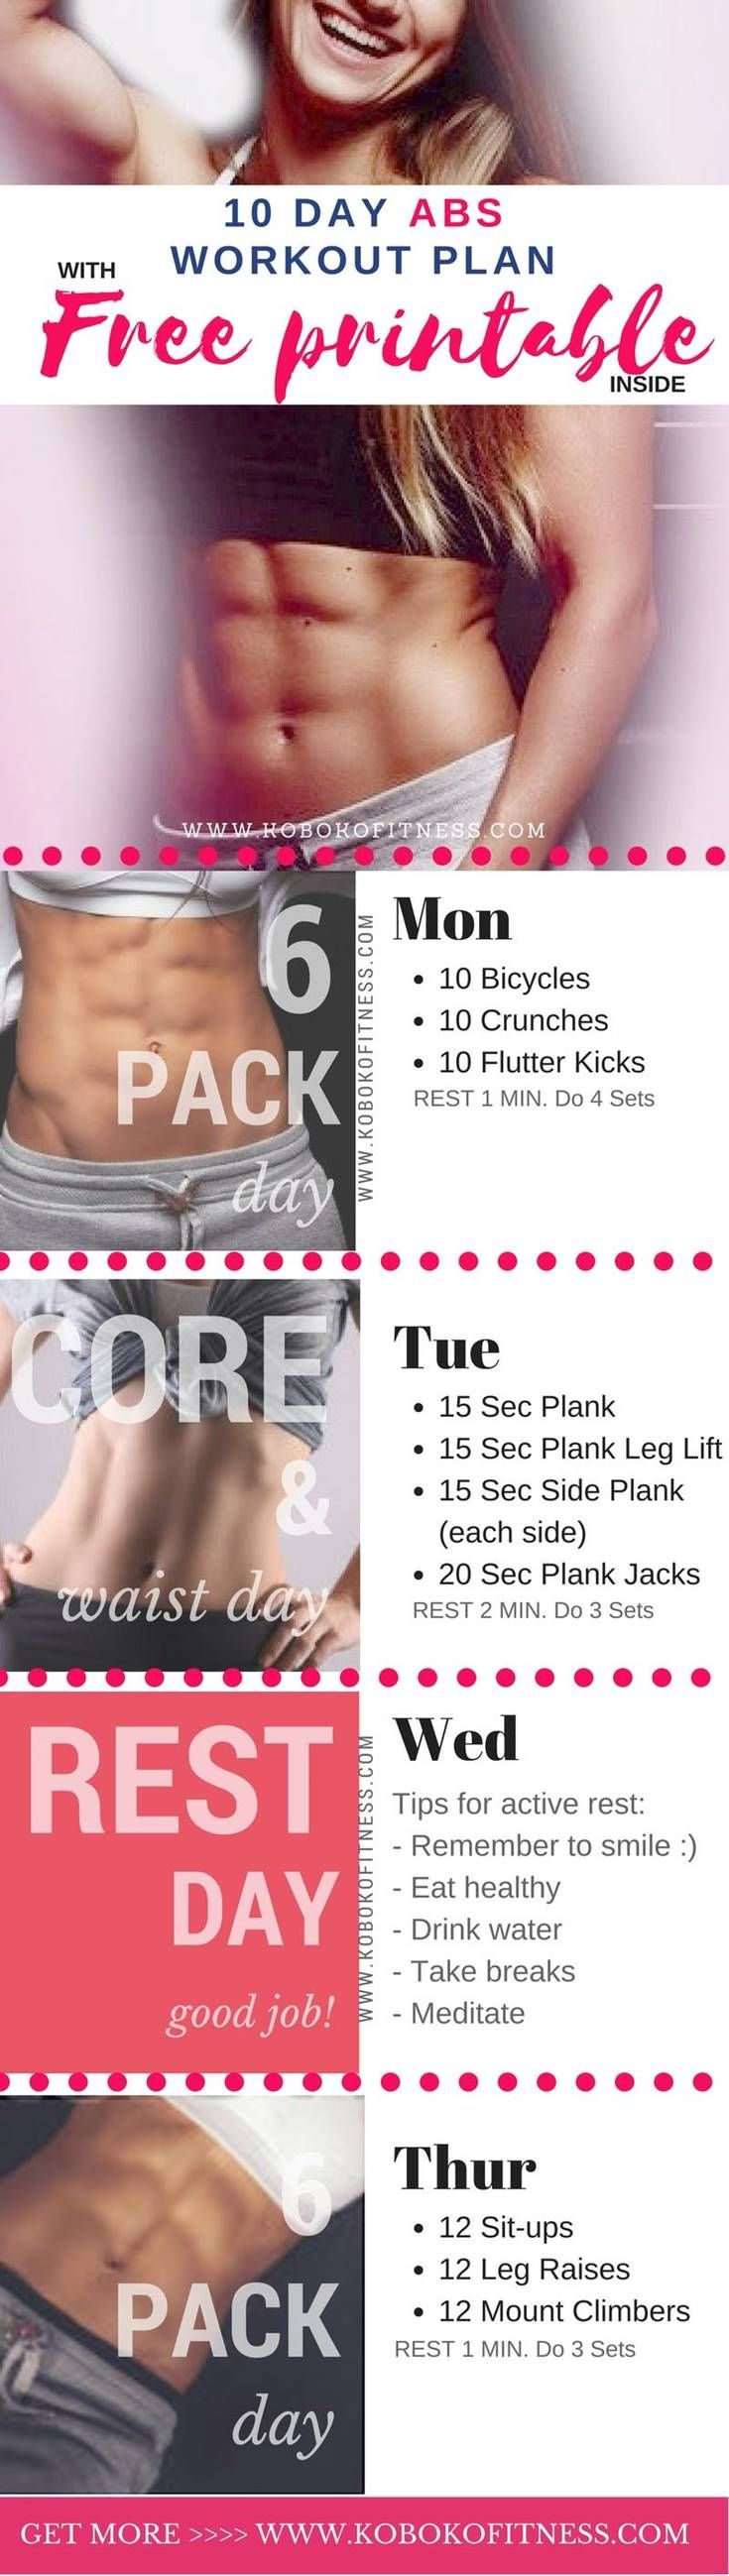 Get this ab workout plan to help get rid of belly fat and get toned abs at home. Extra free ab workout tips and advice you can use fast